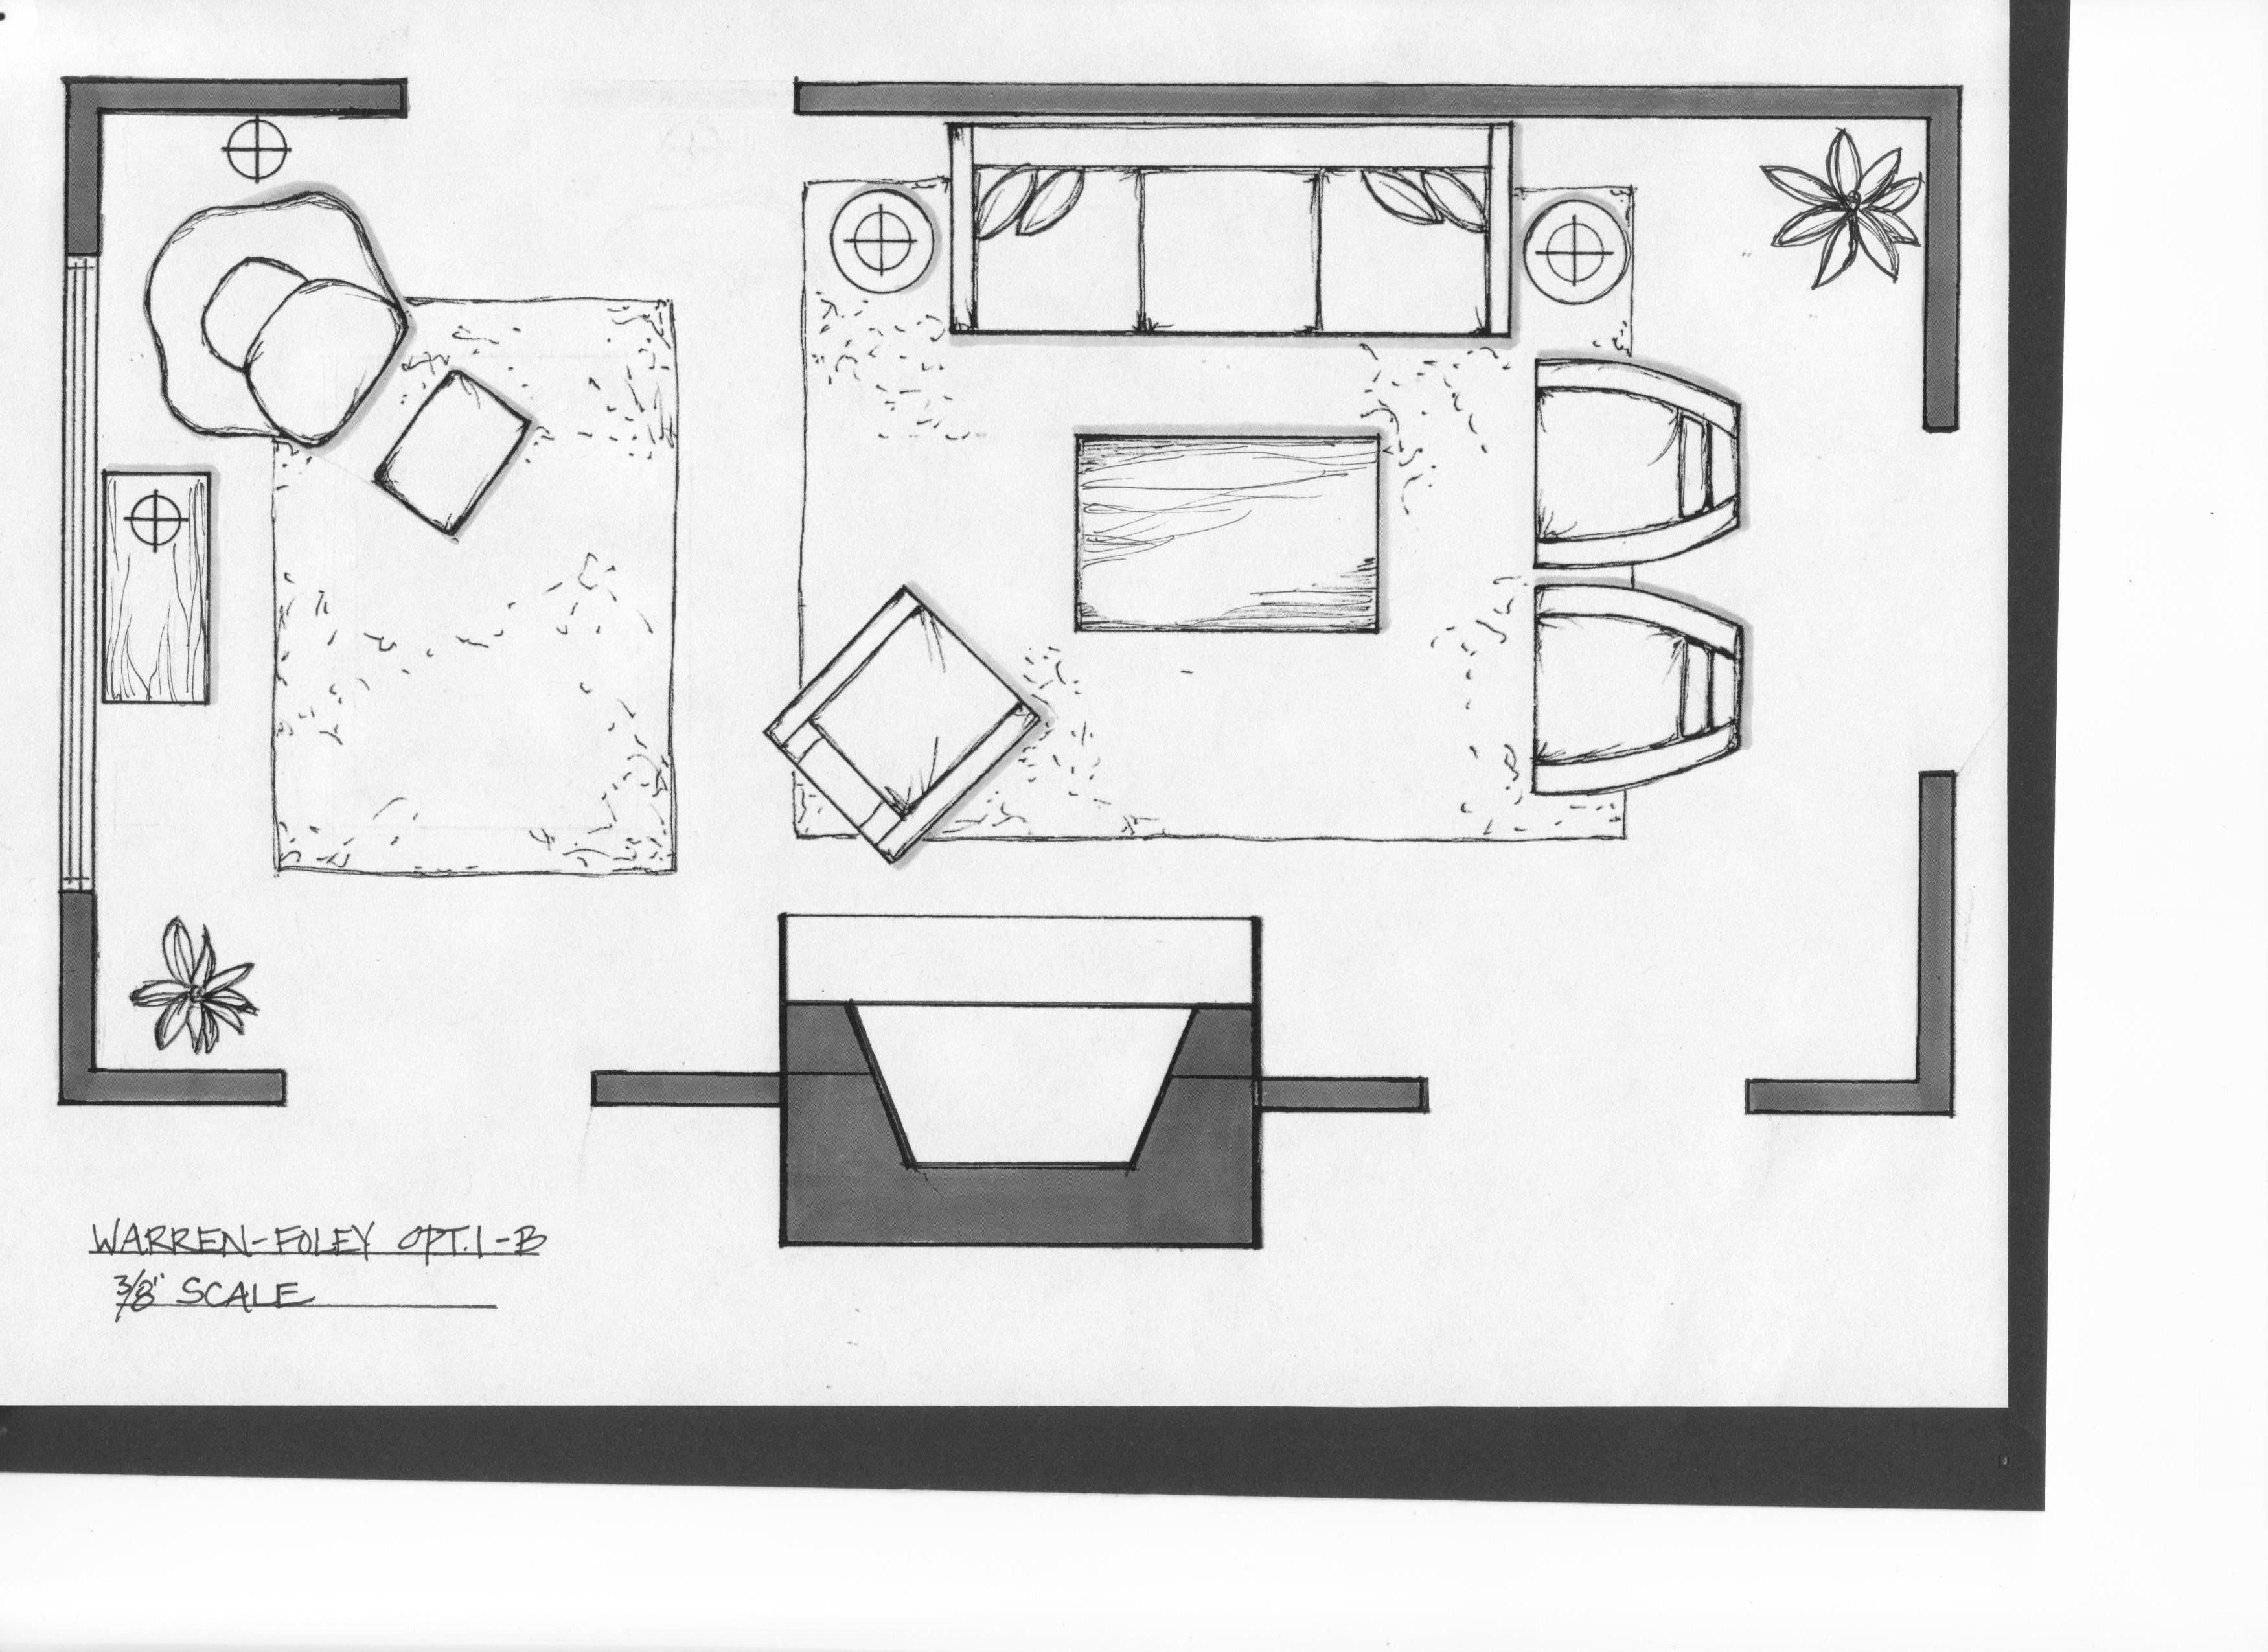 Awesome Living Room Floor Plan With Furniture And Review